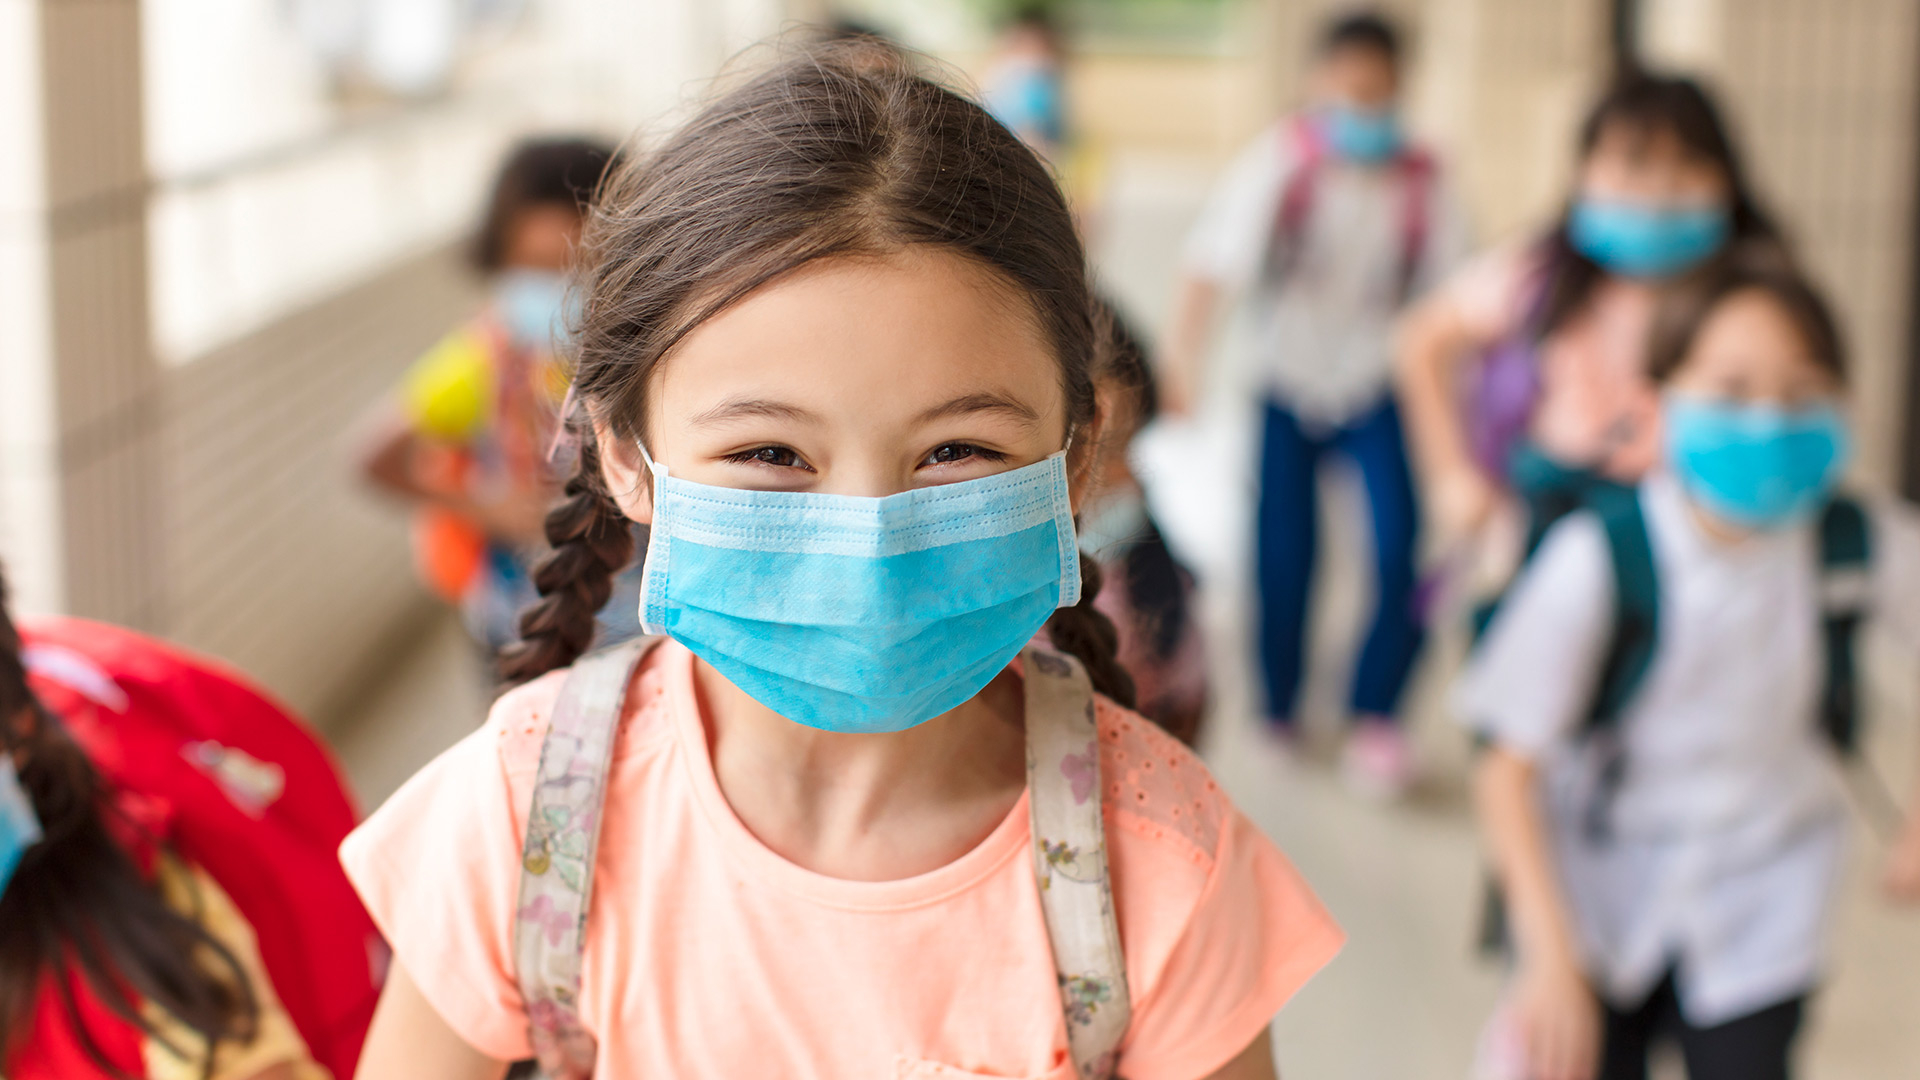 As COVID-19 cases rise in children, a pediatric infectious disease expert offers advice on helping kids return to school safely